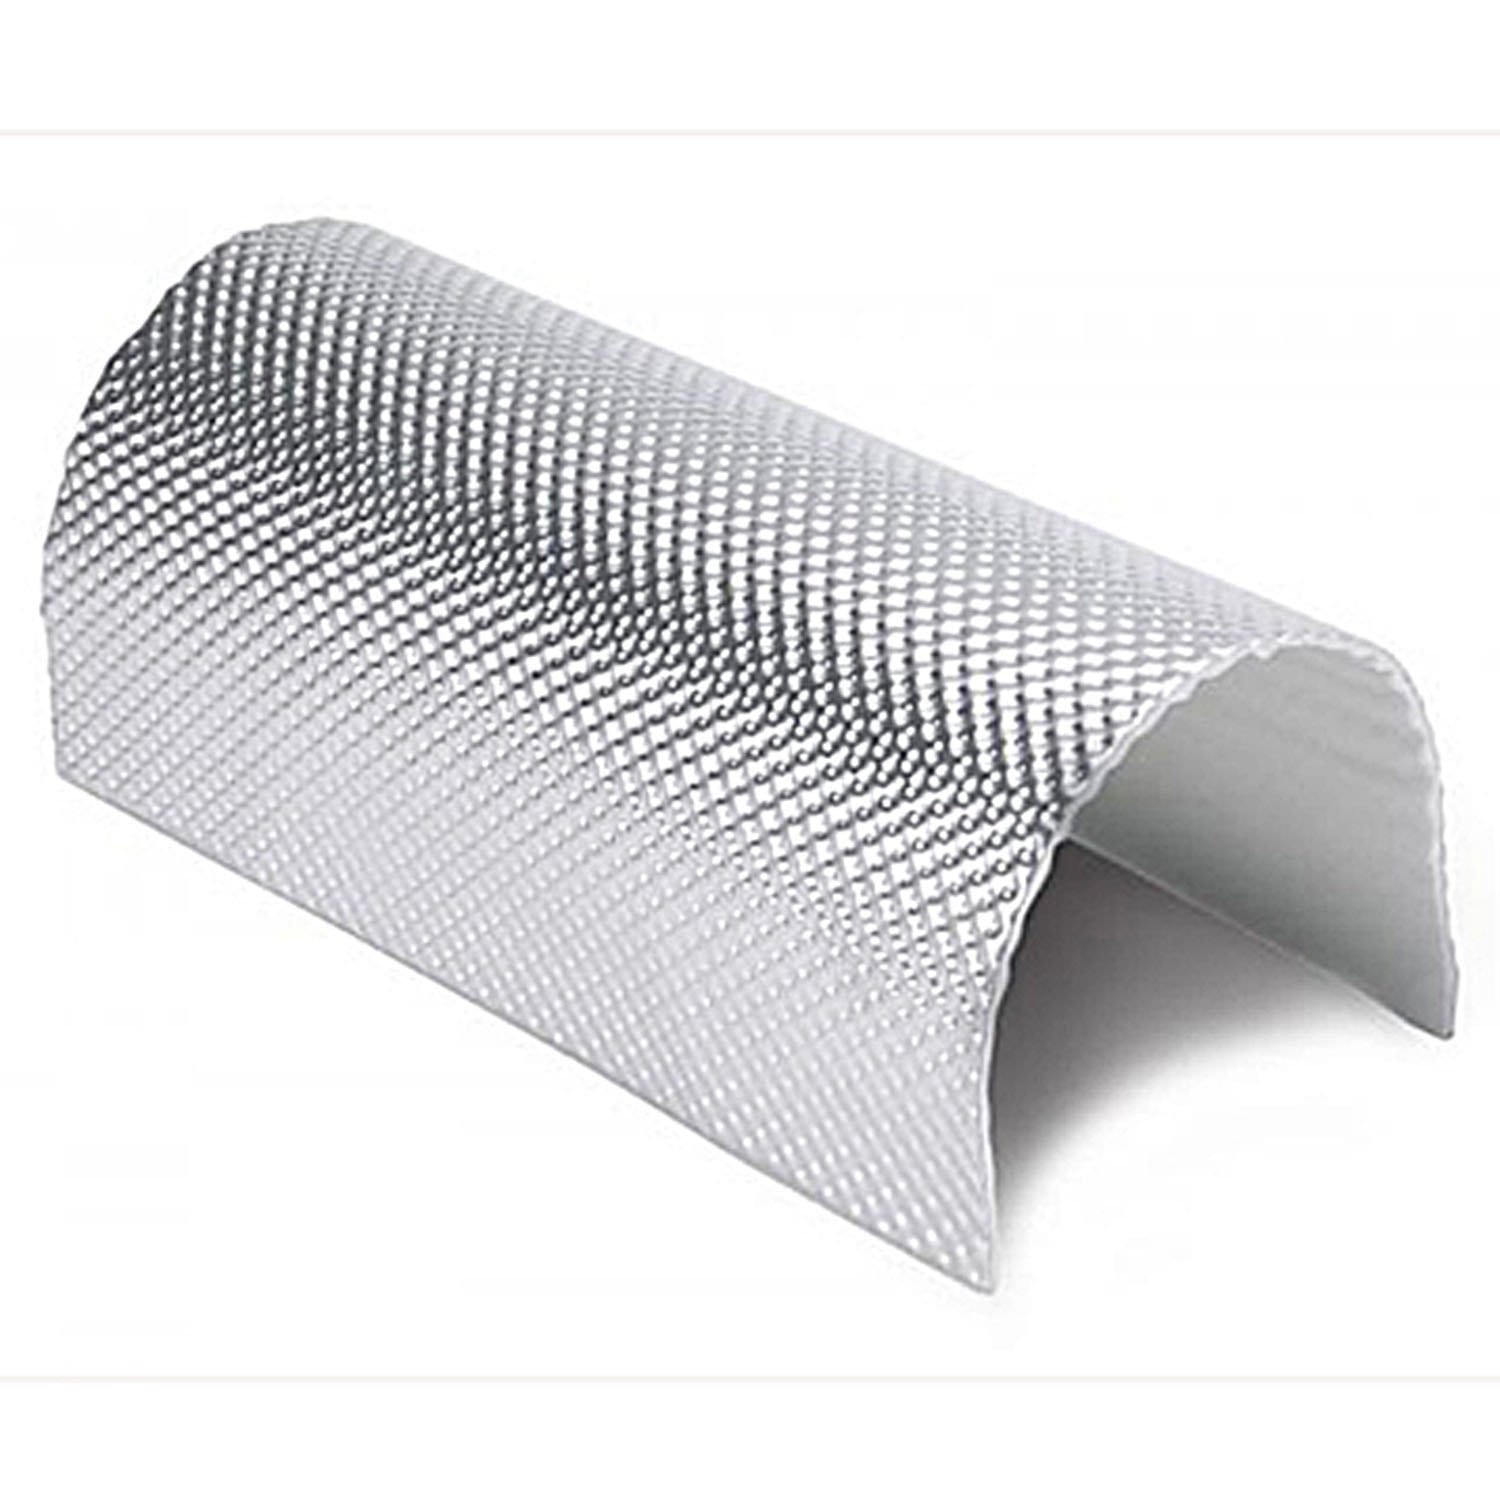 Bodywork Heat Shield, 12'' x 21'', Super High Temp, Peel and Stick - Woodcraft Technologies - Motorcycle Parts